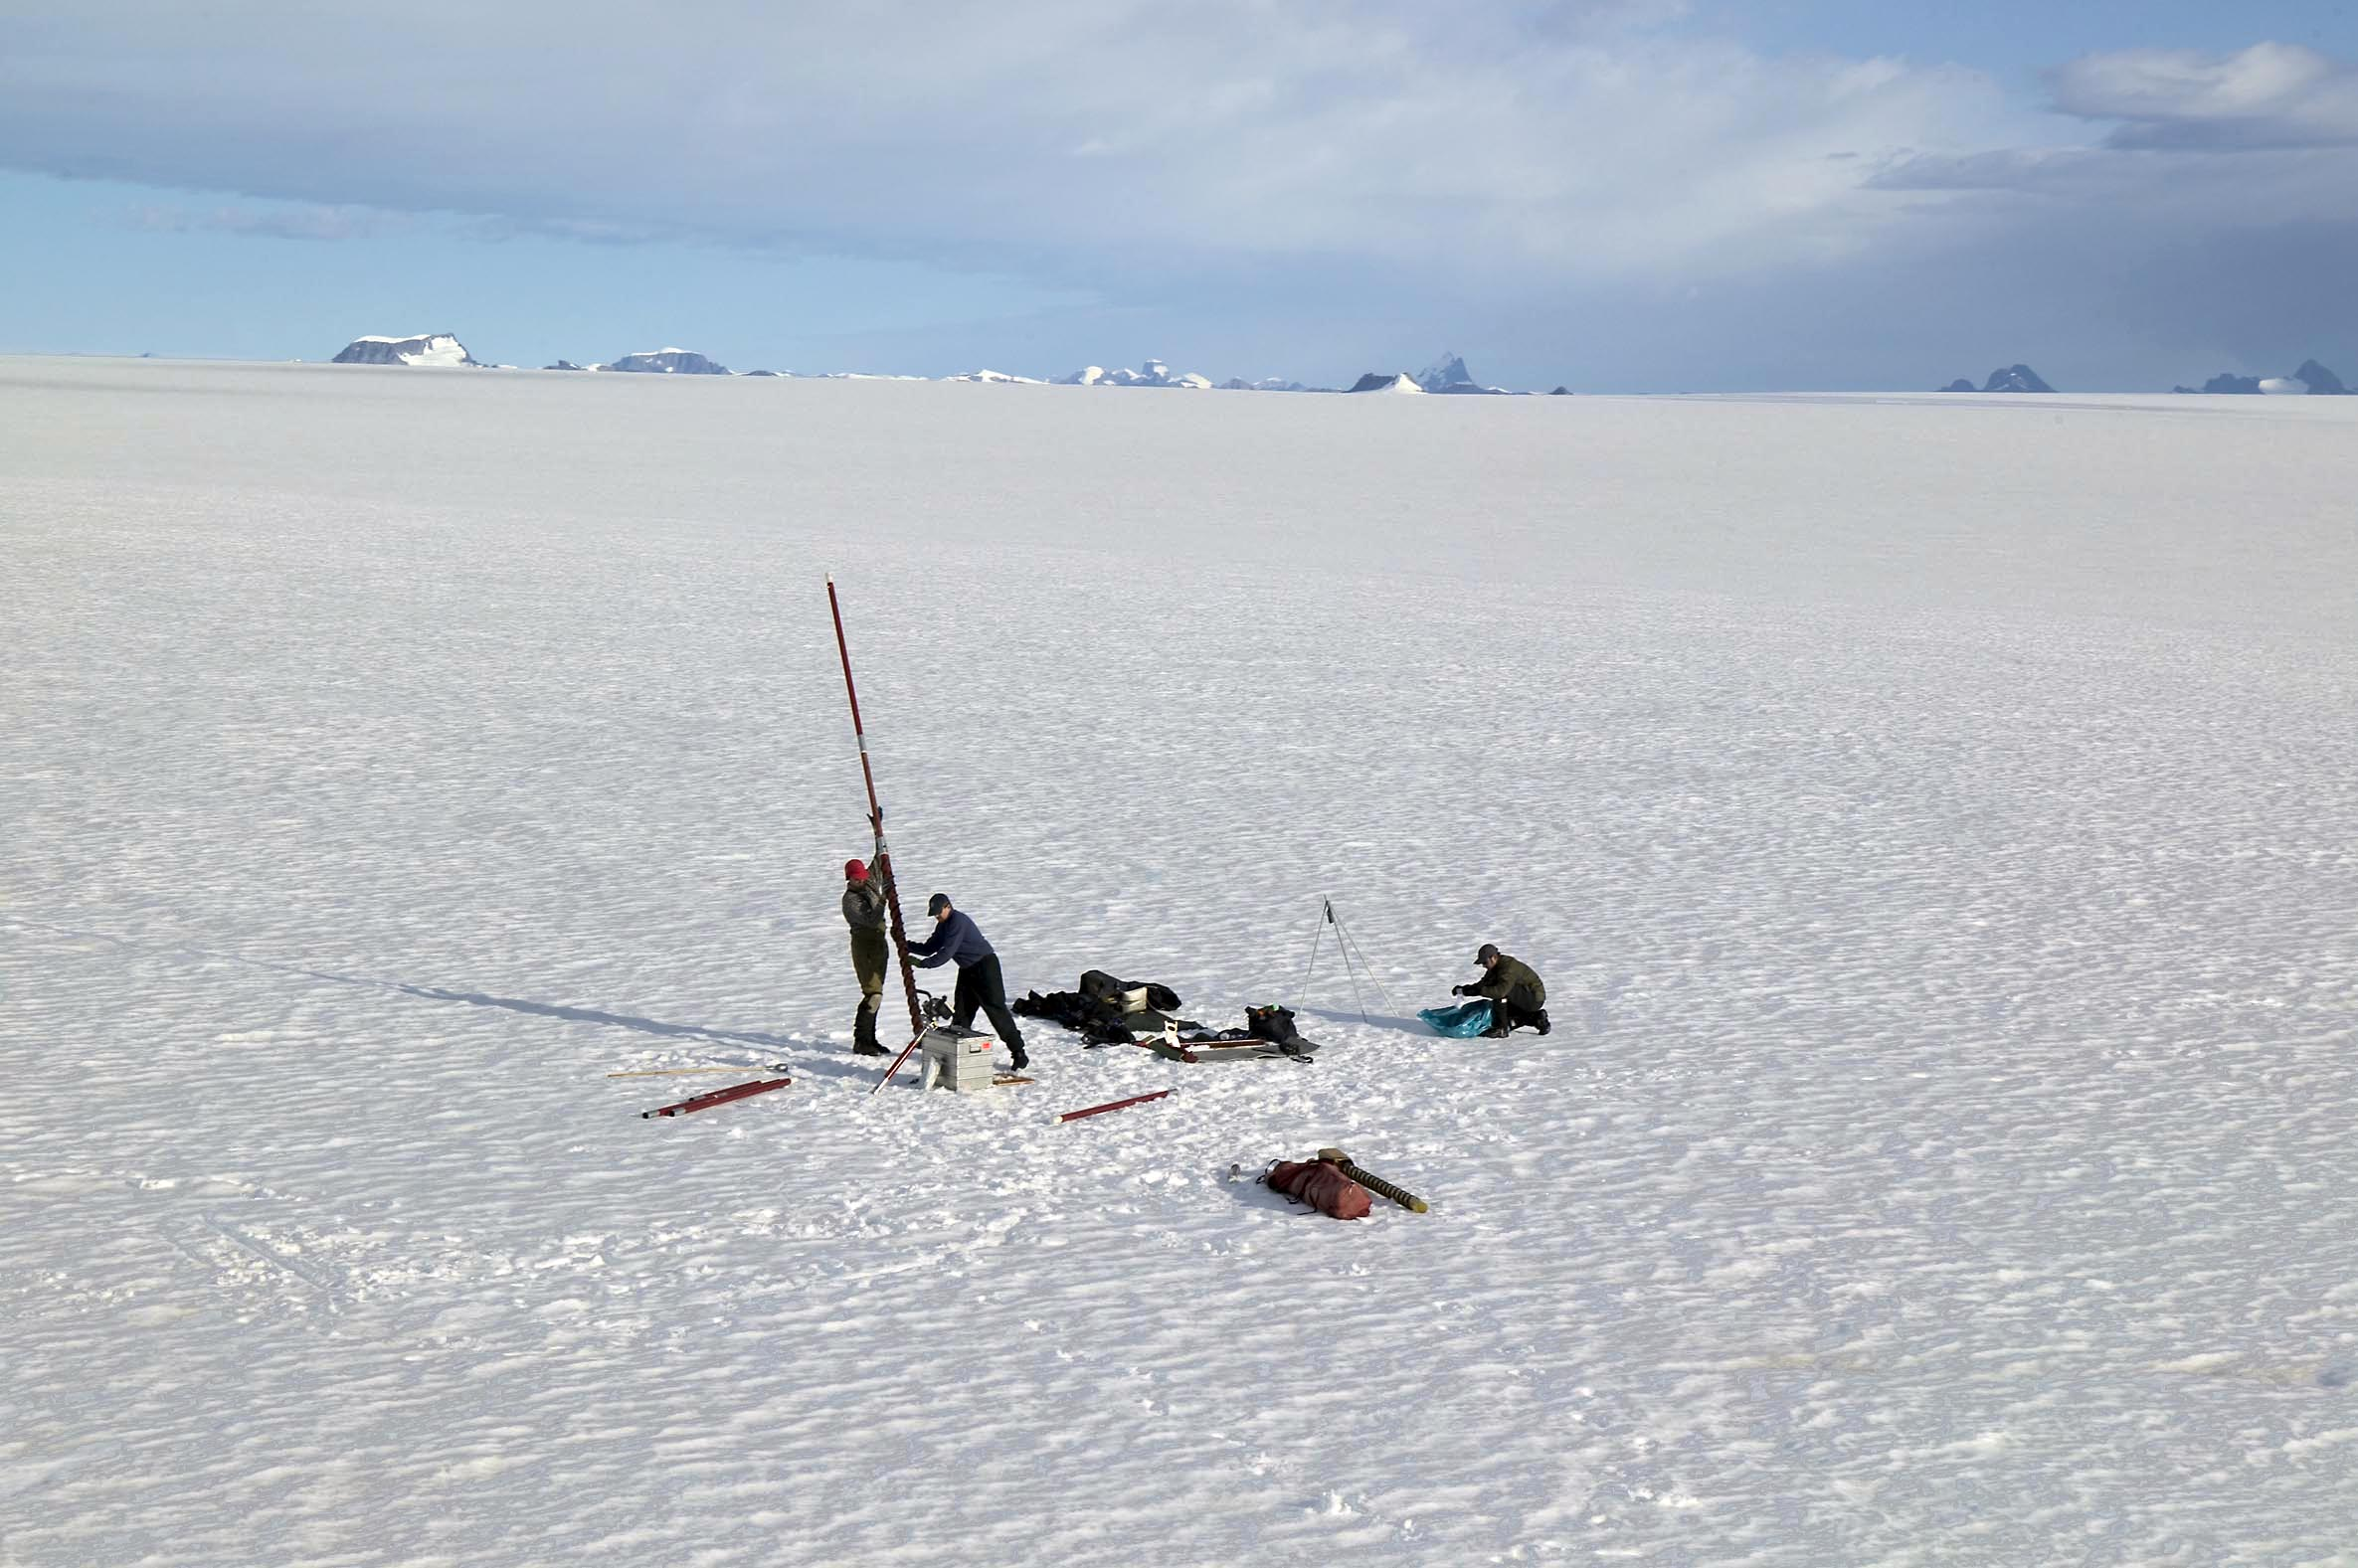 Scientist Jason Box drills a long hole to extract ice core samples. These enable him to map precipitation and melt levels for the South Eastern tip of Greenland. Credit: Nick Cobbing/Greenpeace.